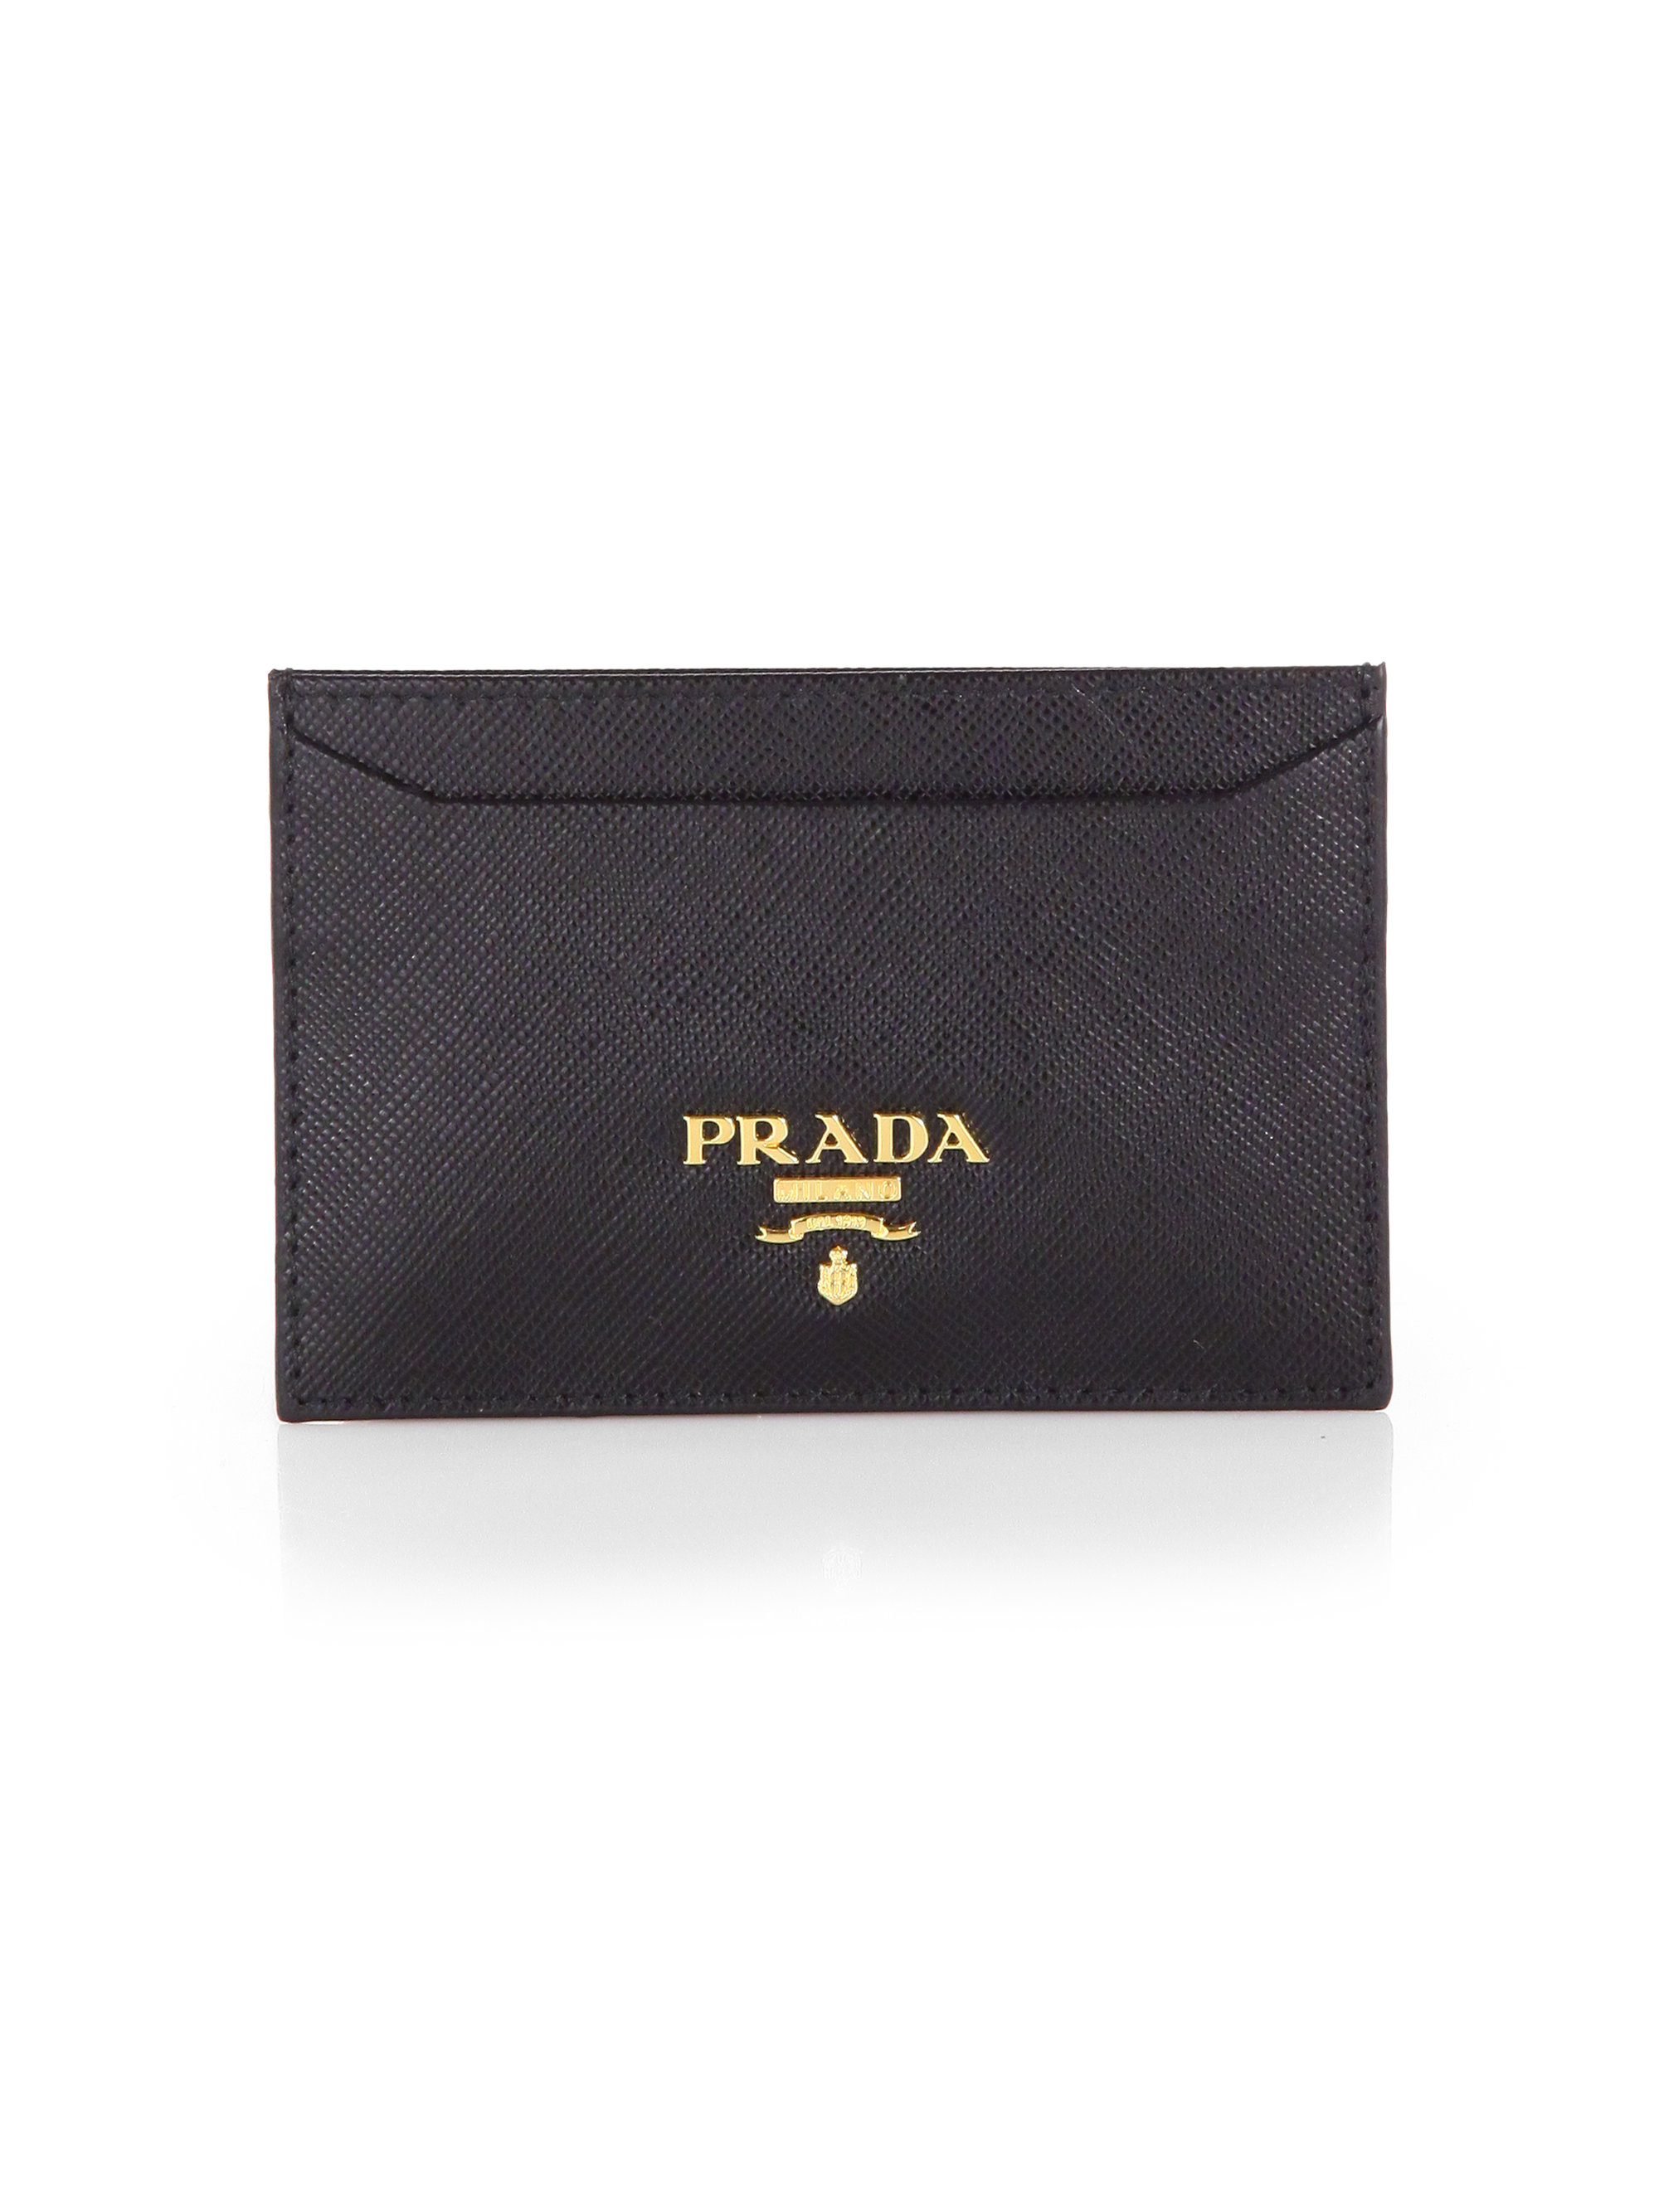 b37f9473adb8 ... amazon lyst prada saffiano credit card holder in black 20b3d af7eb